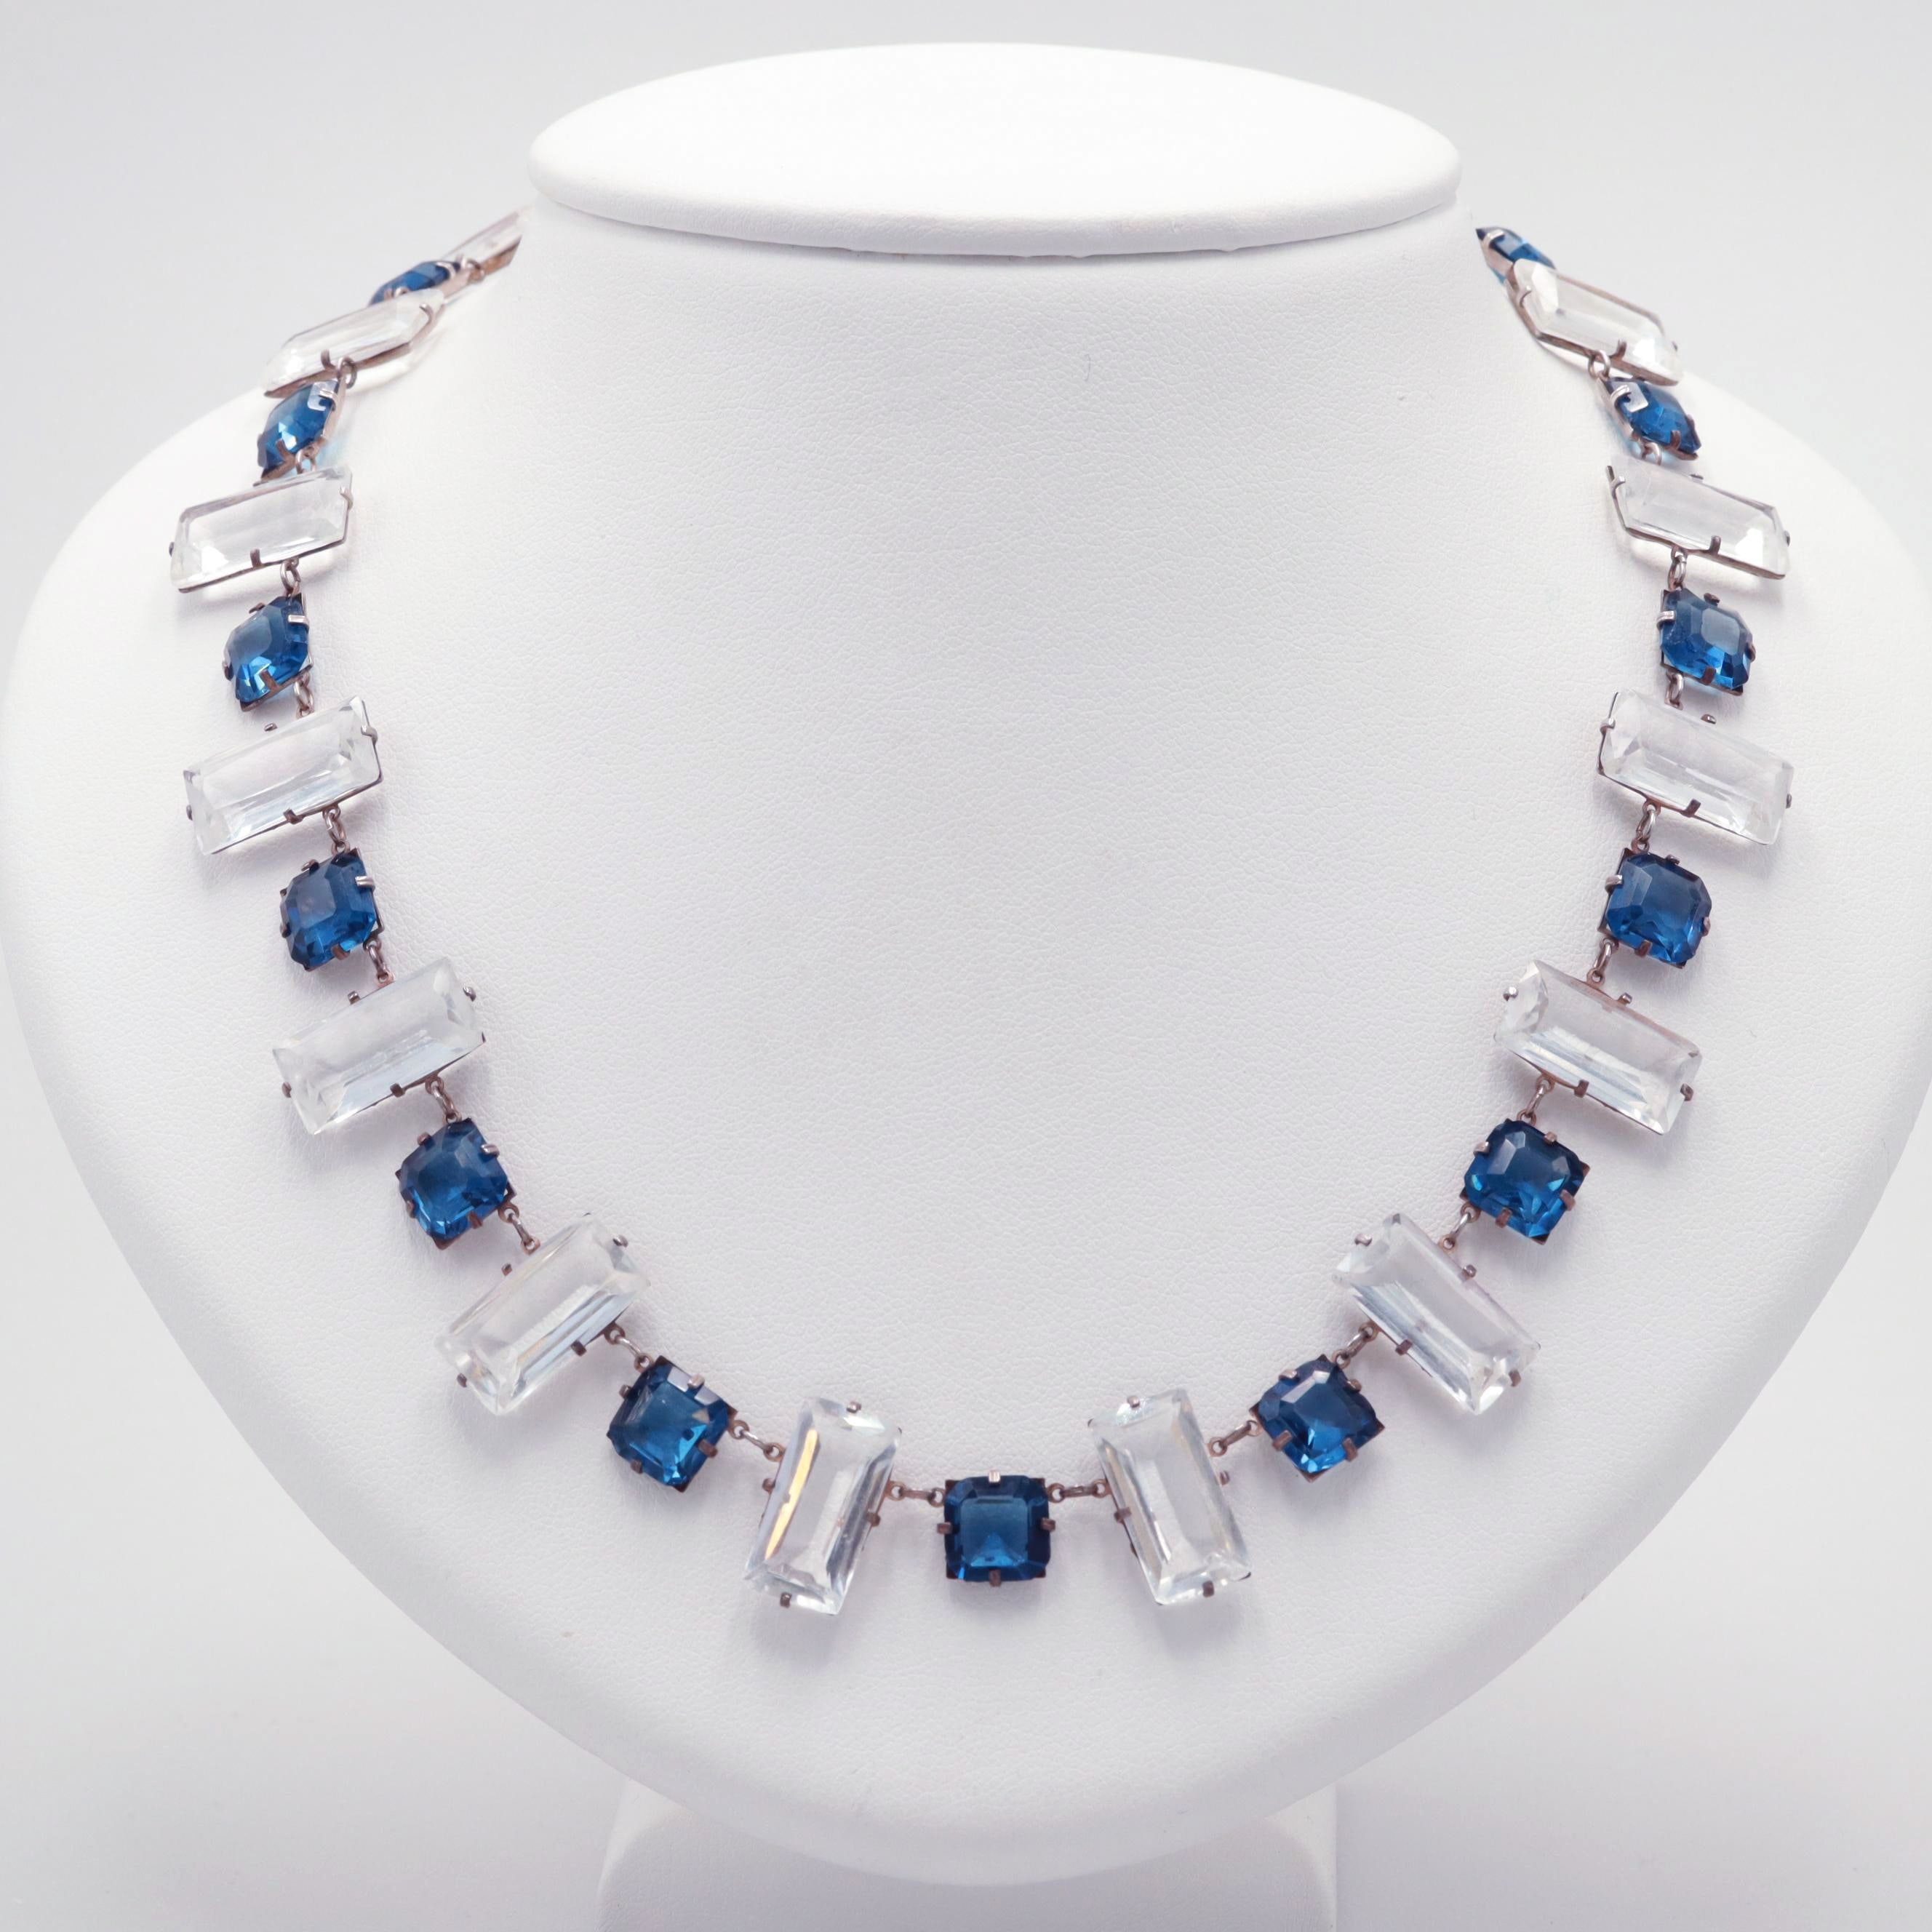 Circa 1940s Sterling Silver Glass Necklace